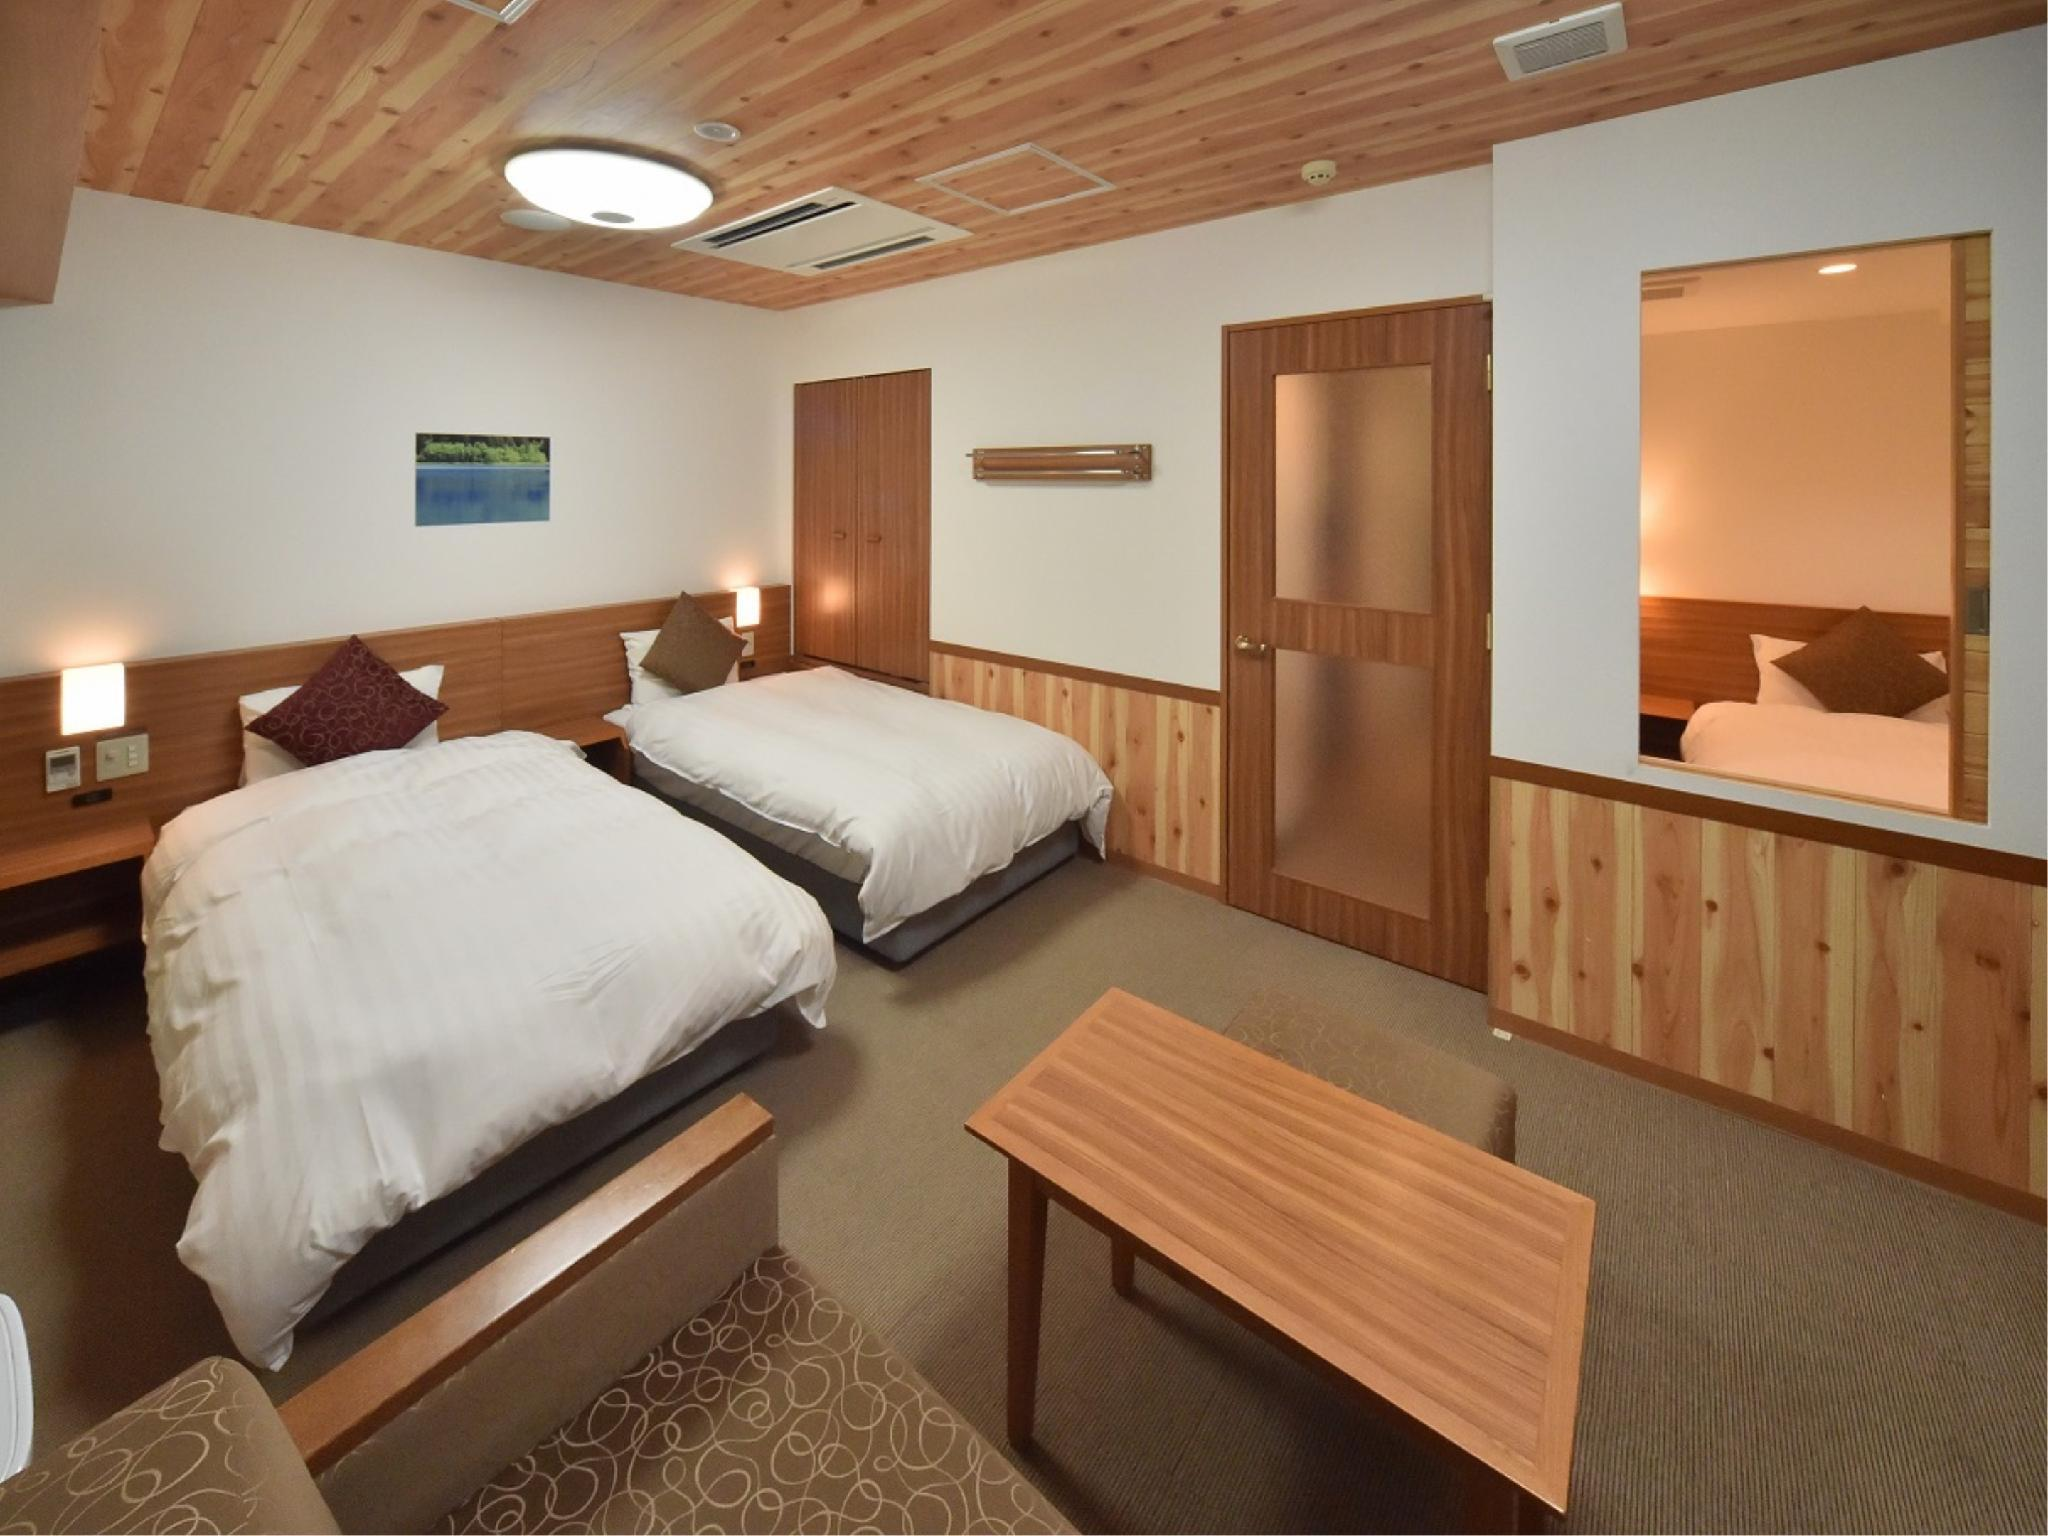 豪華雙人雙床房(淋浴) (Deluxe Twin Room*Has shower, no bath in room)